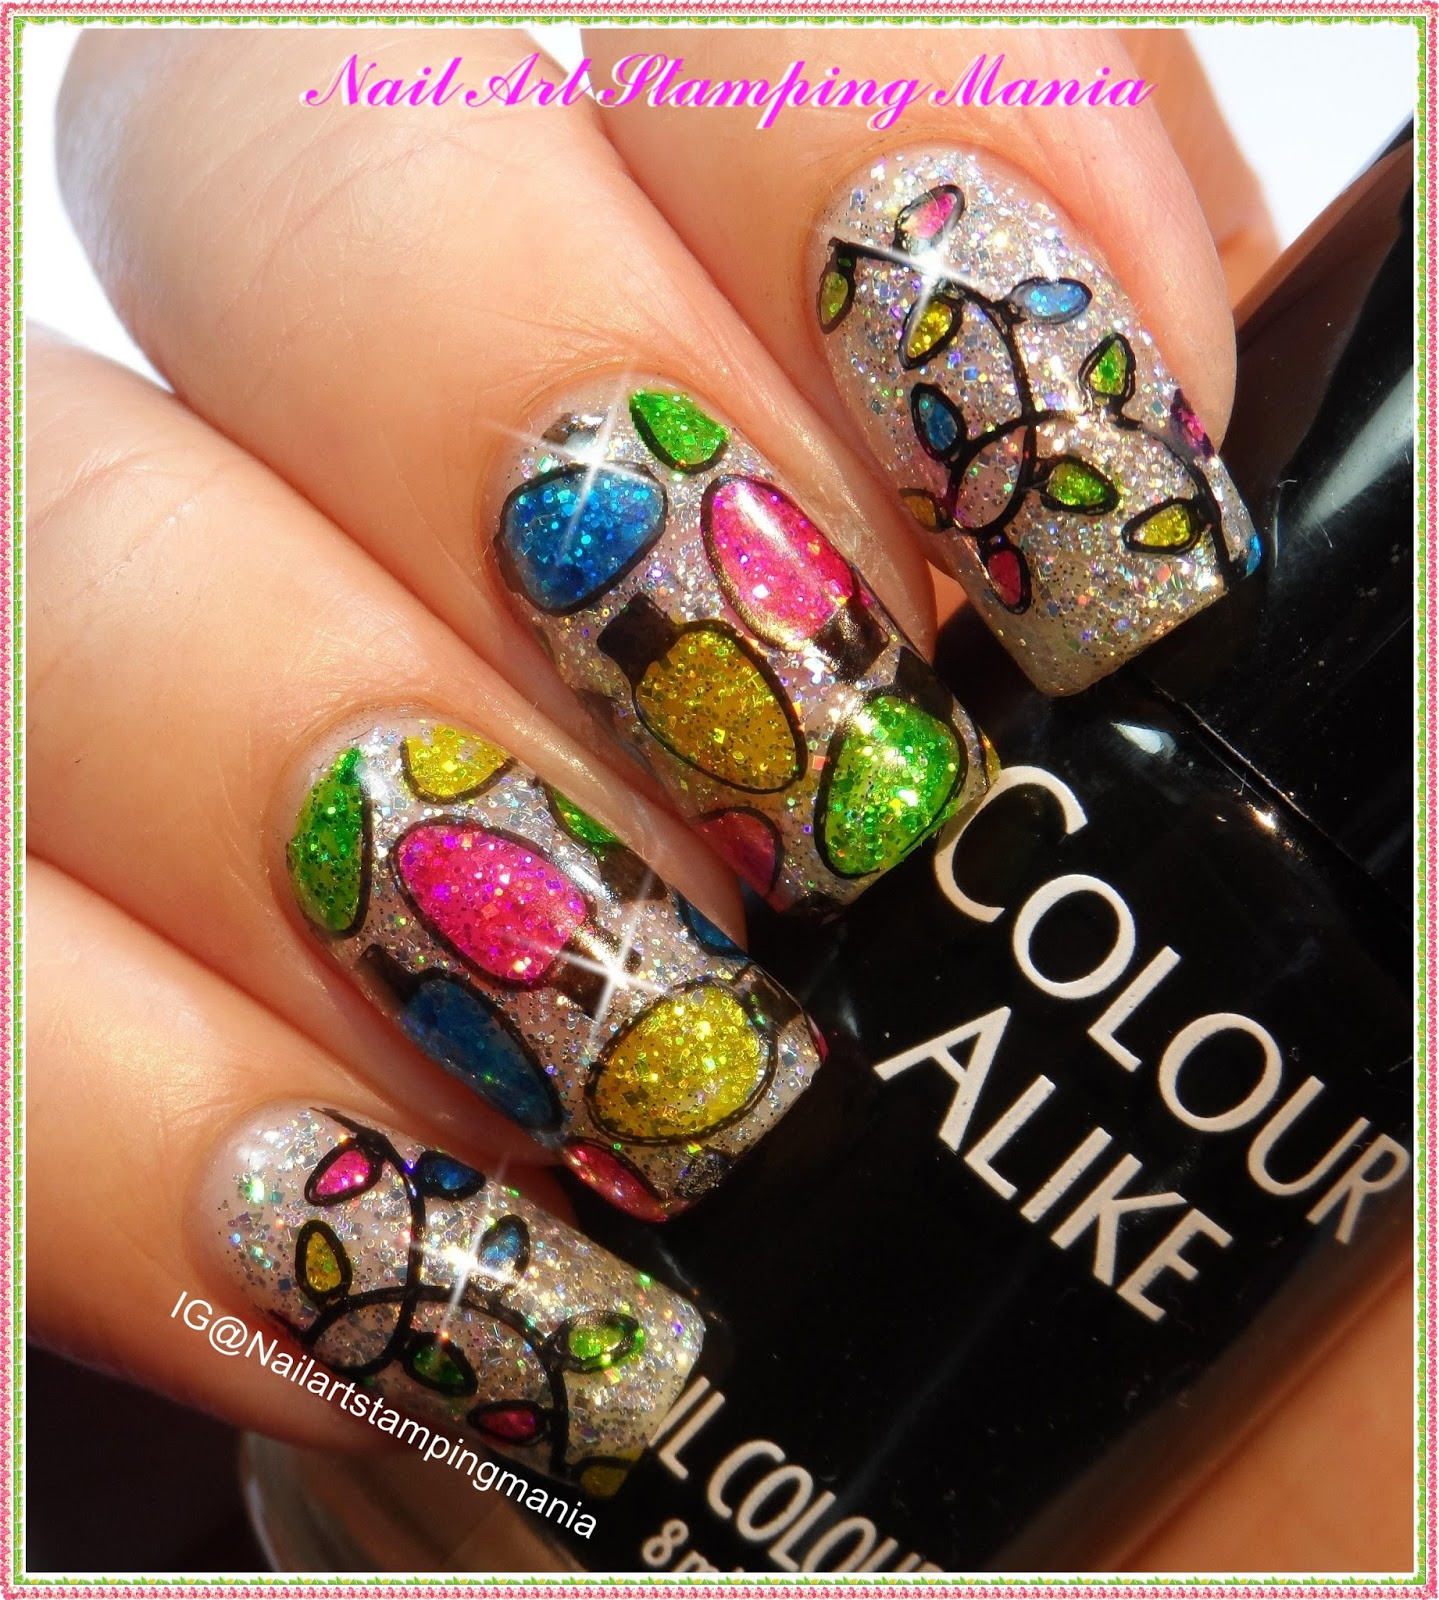 Christmas Lights Nails Pinterest: Nail Art Stamping Mania: Christmas Lights Manicure With